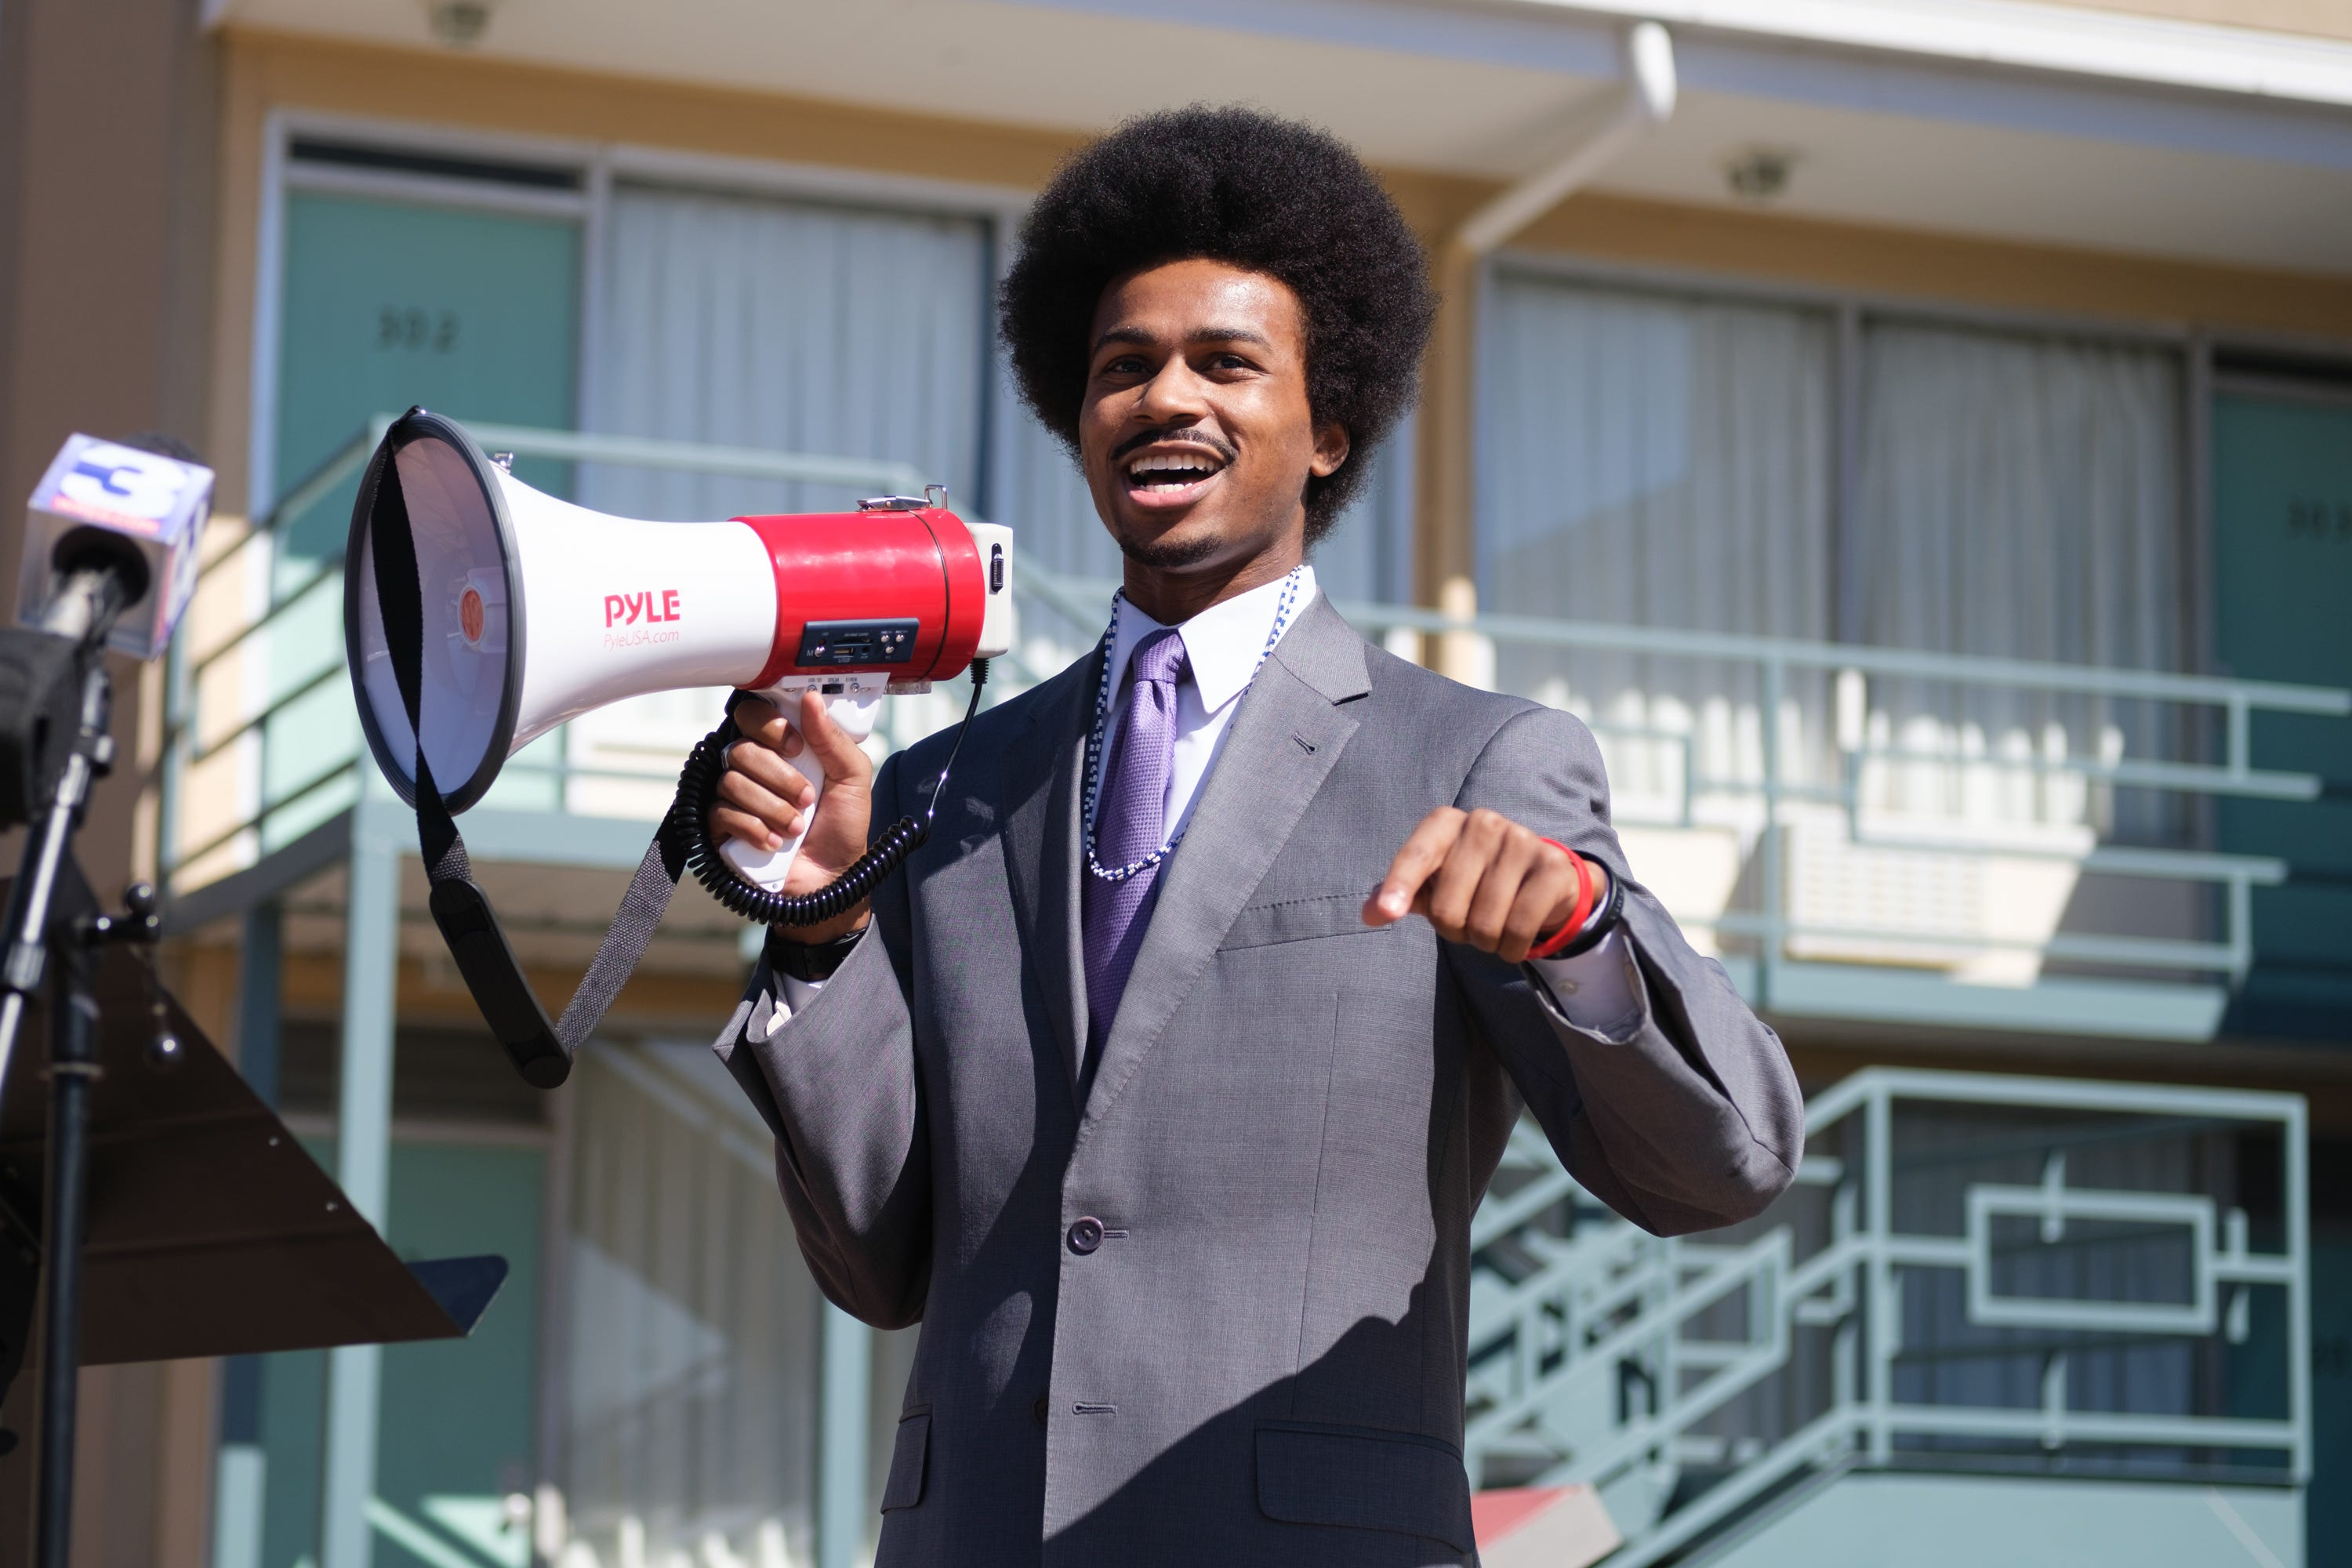 Justin Pearson in a gray suit stands in front of the National Civil Rights Museum holding a red megaphone.